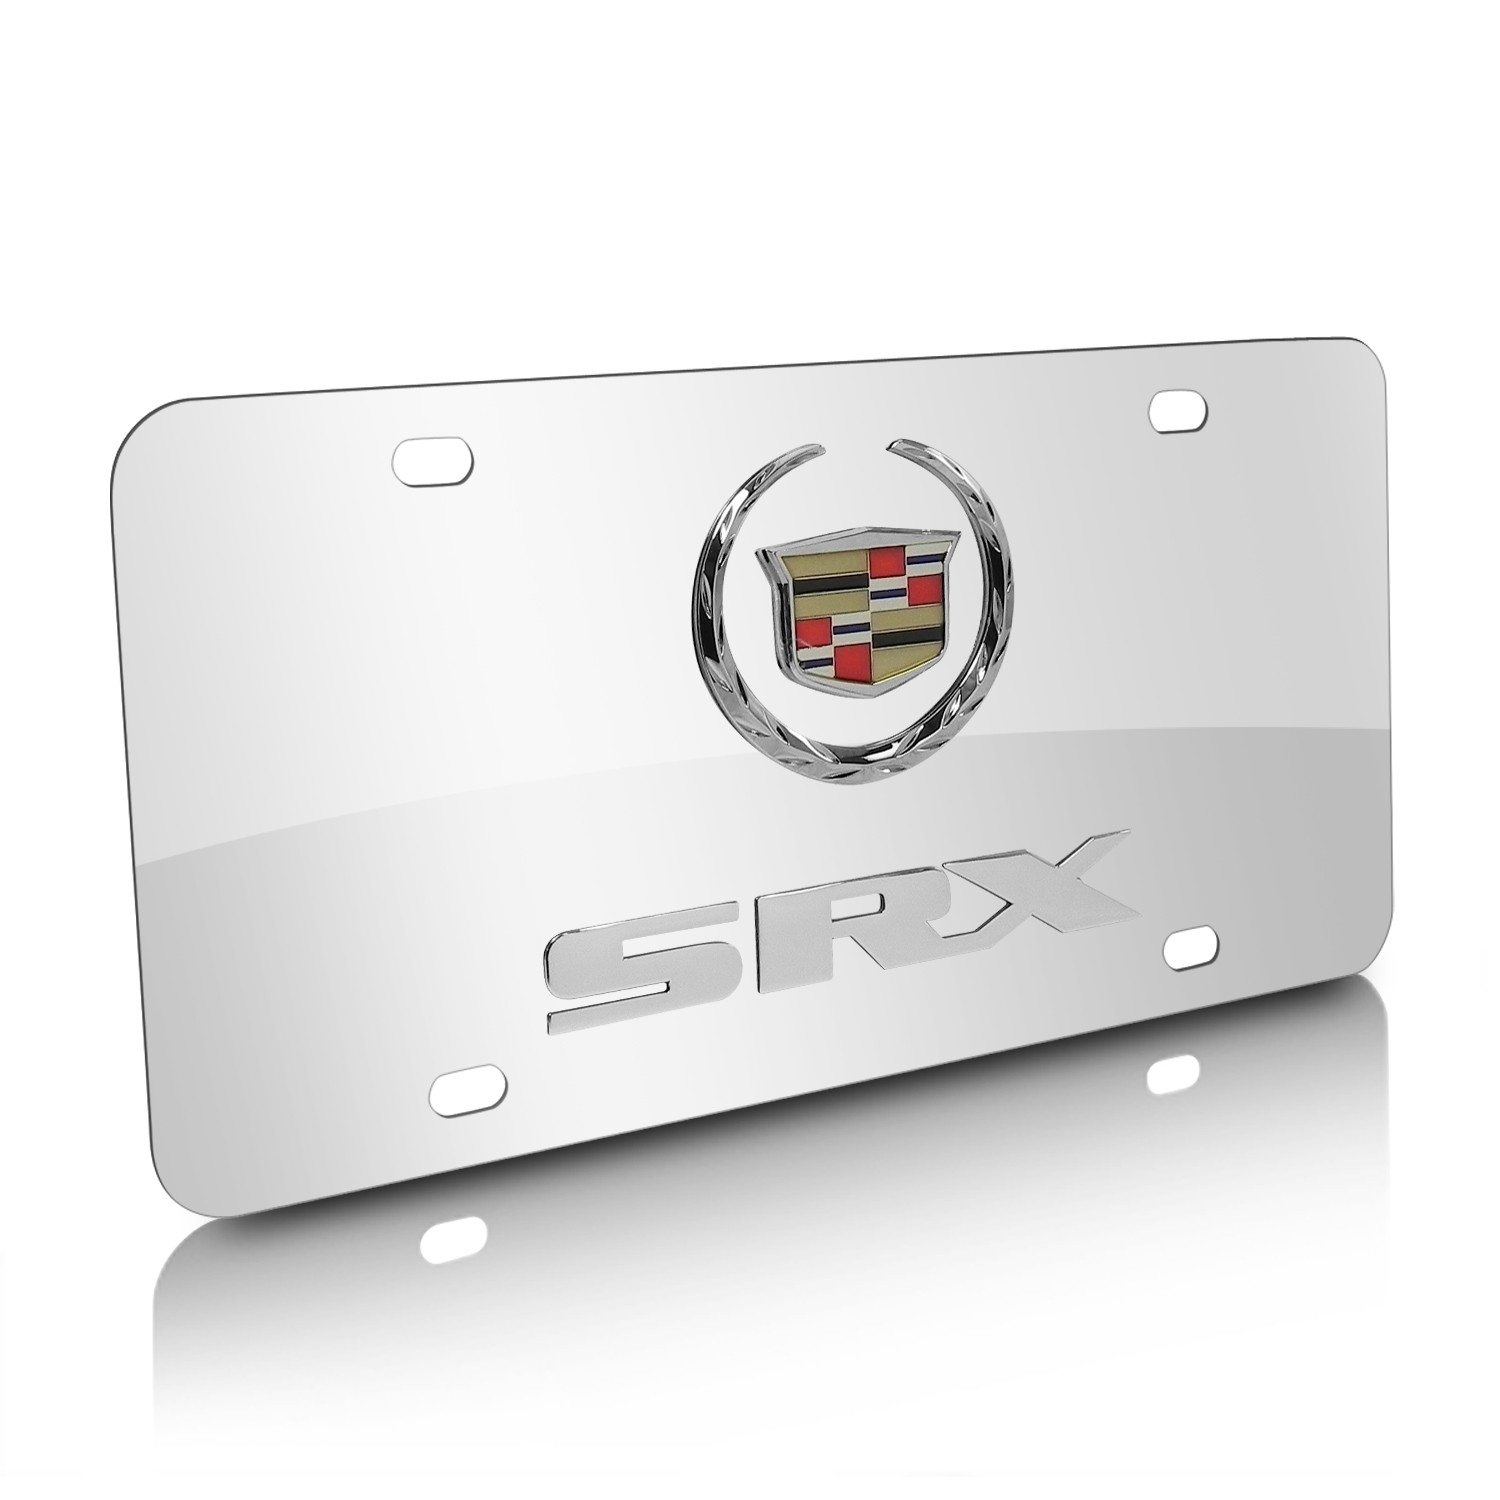 Cadillac SRX Double 3D Logo Chrome Stainless Steel License Plate